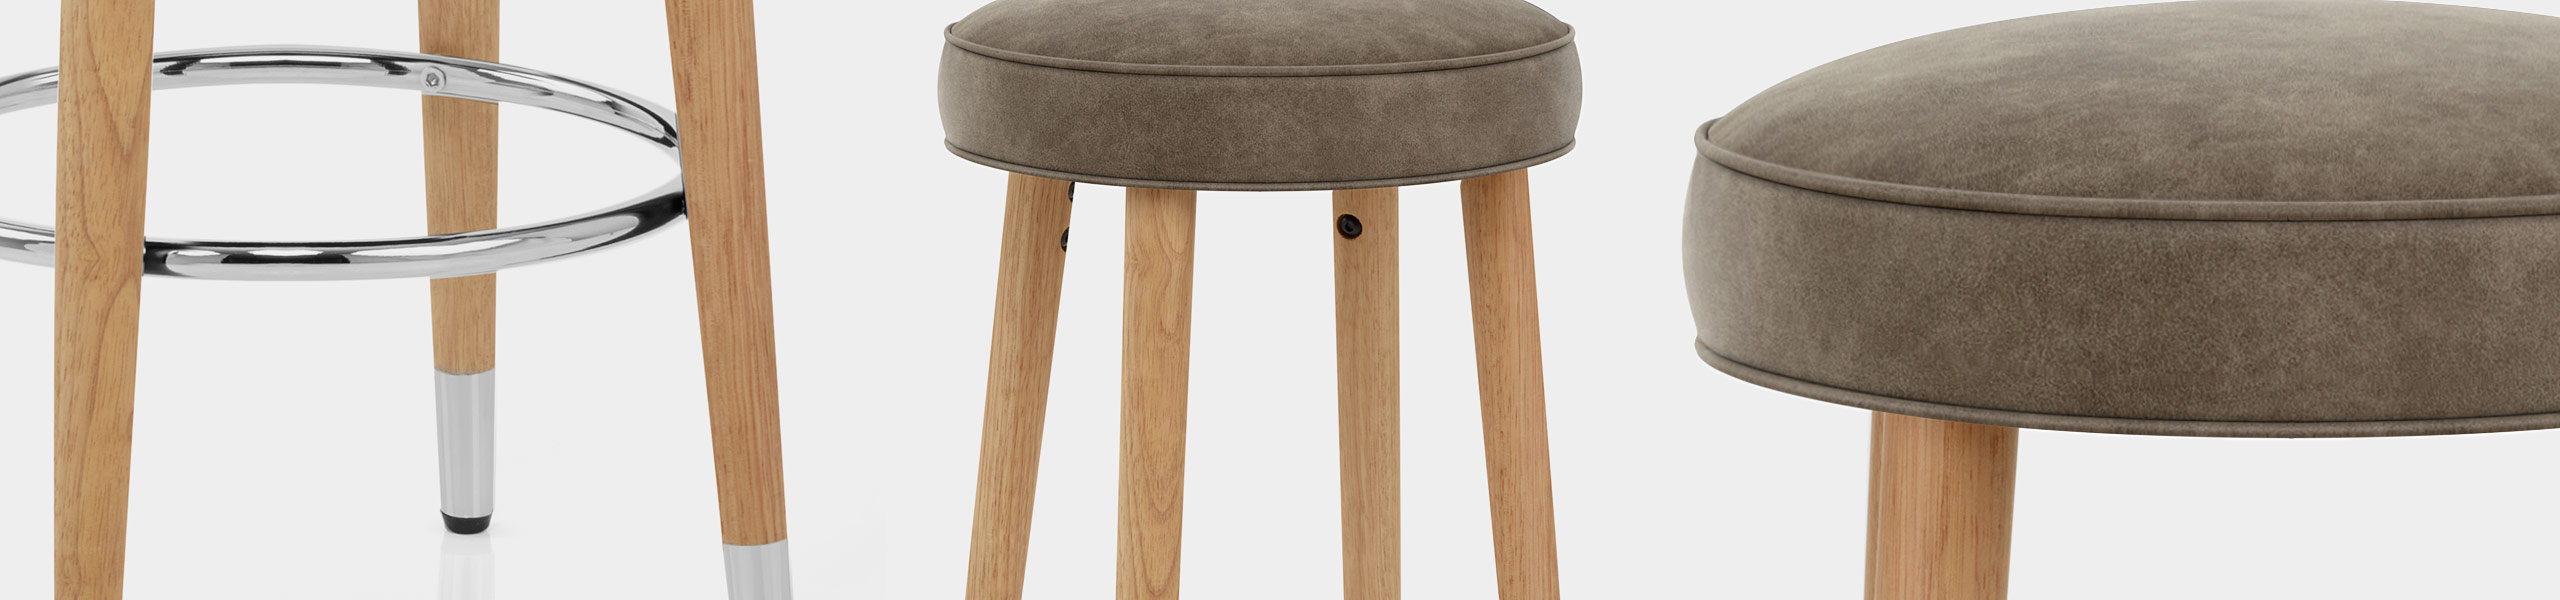 Conrad Oak Stool Antique Brown Video Banner